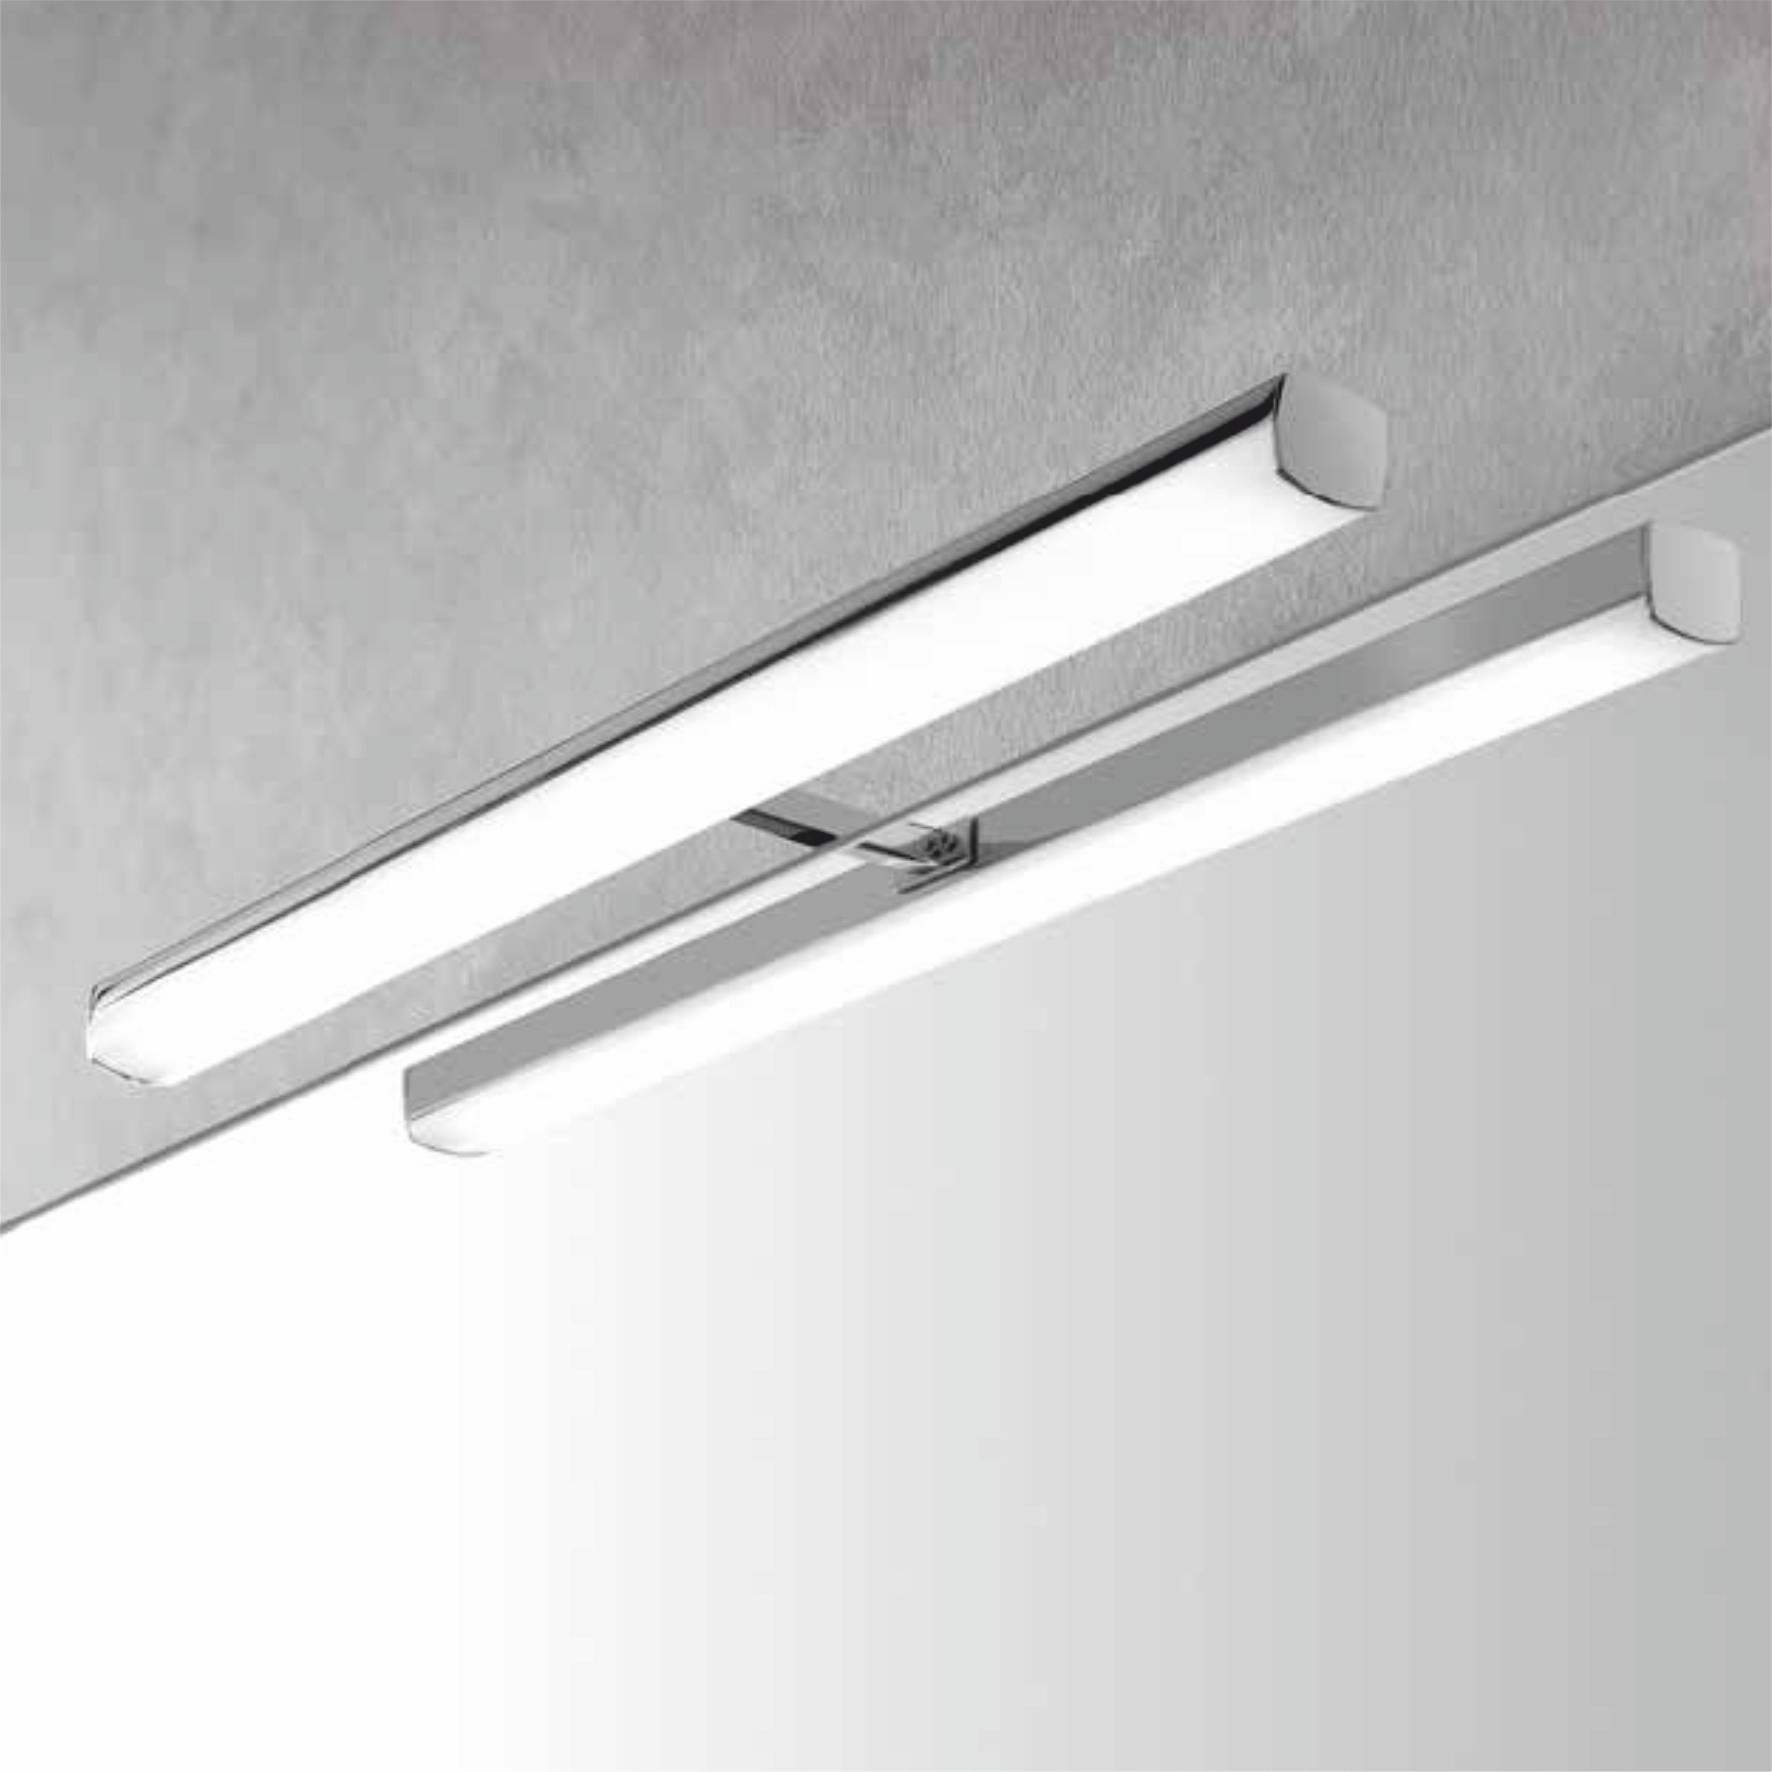 LED-valaisin Focco by Grip Ruth 6 W 490 mm